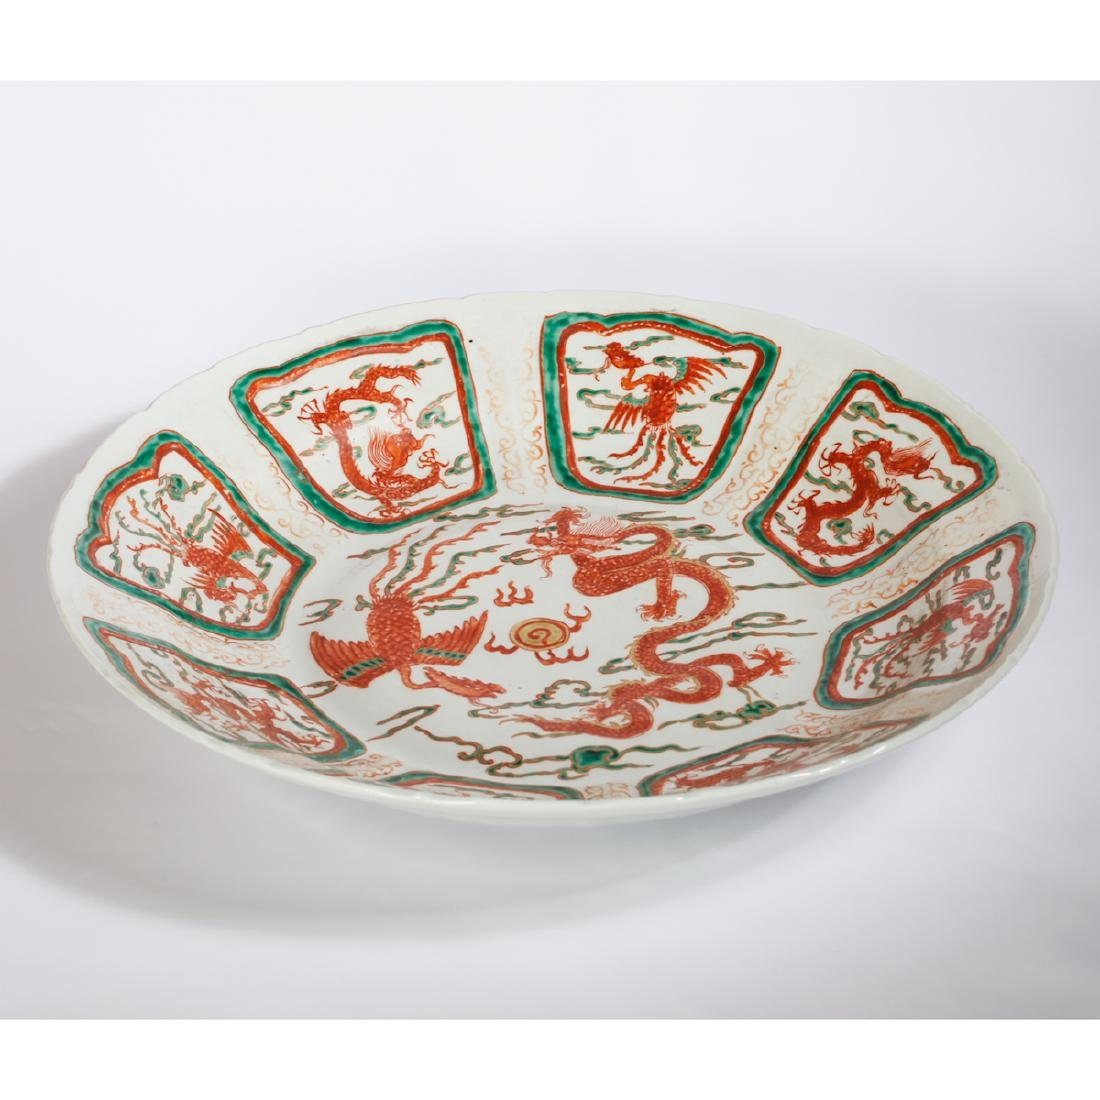 CHINESE RED AND GREEN DRAGON PLATE